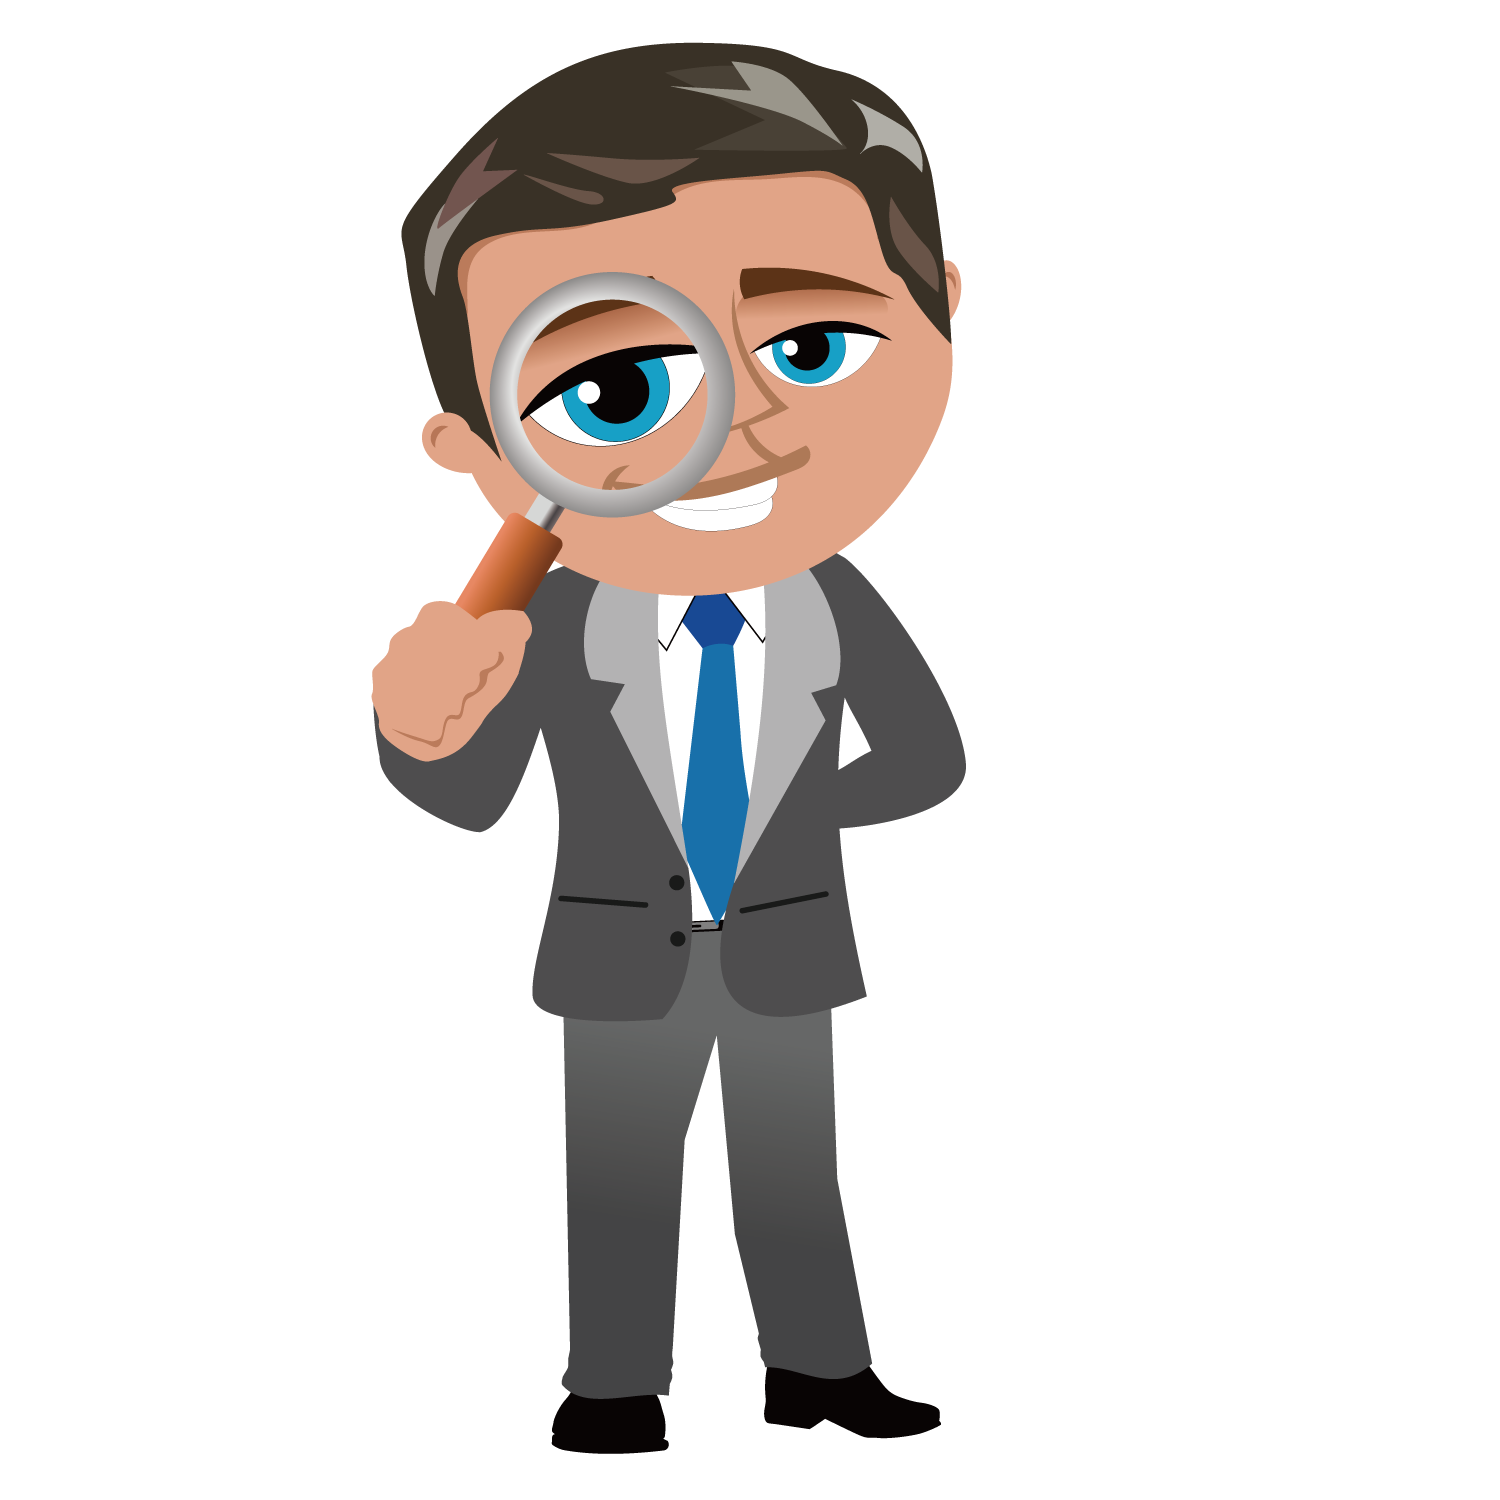 Cartoon businessperson clip art. Manager clipart business person